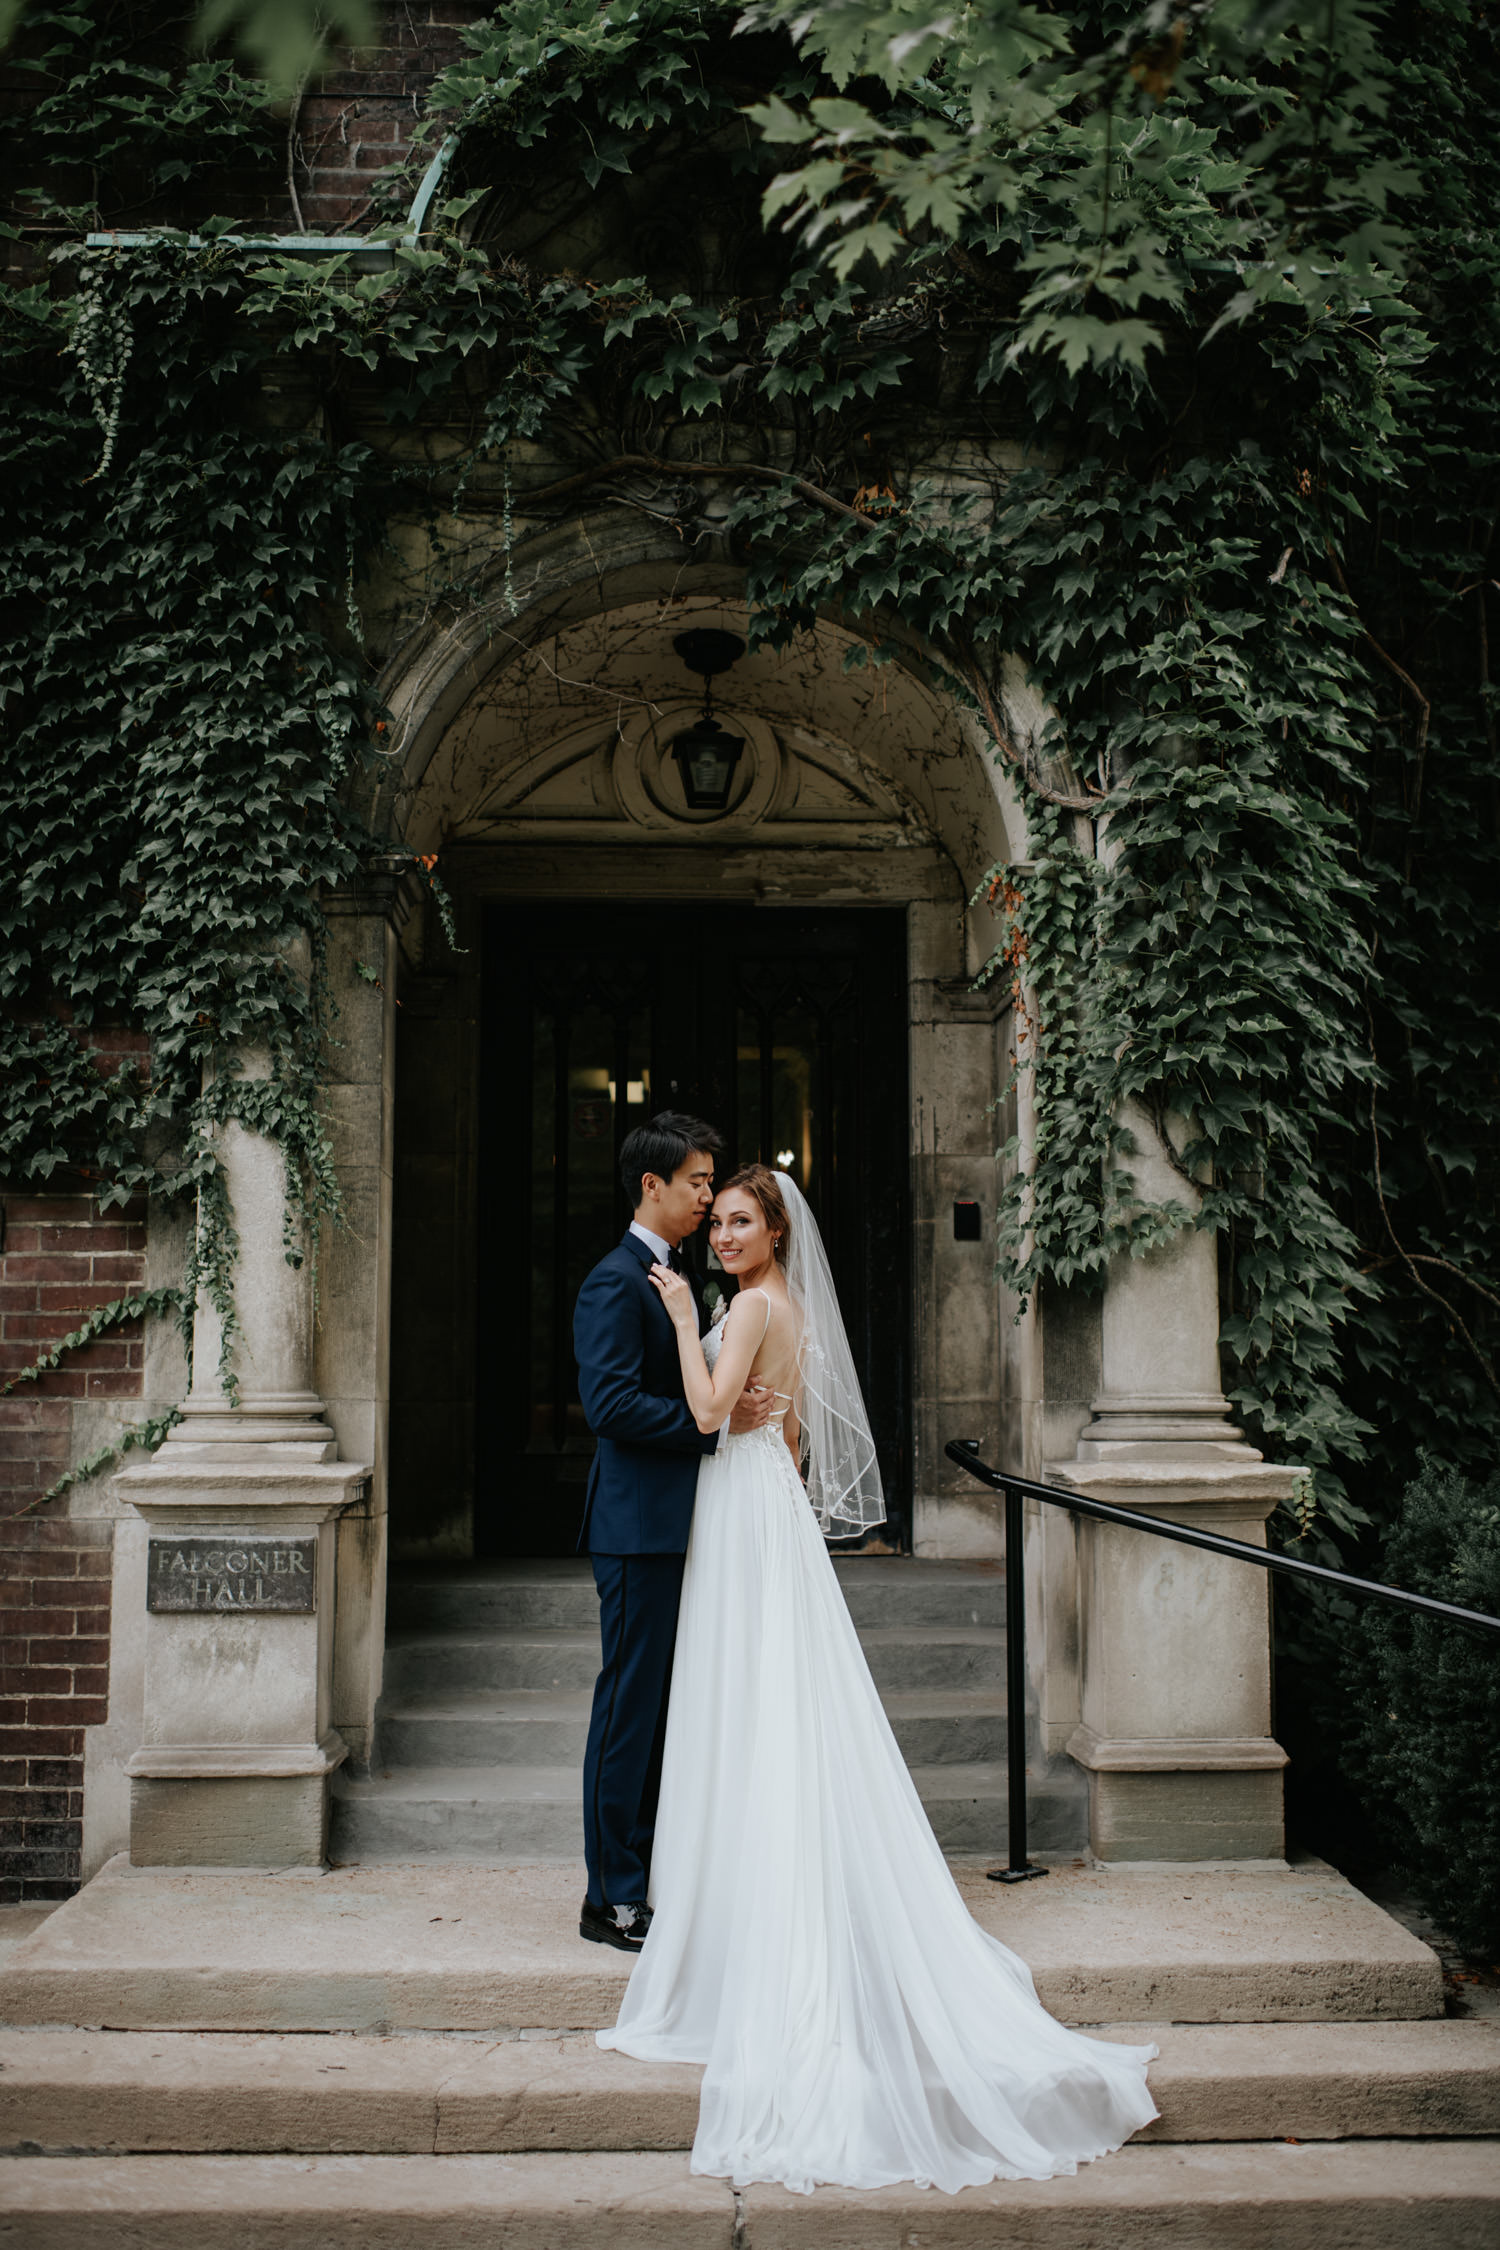 University of Toronto Wedding Portrait Near Law School